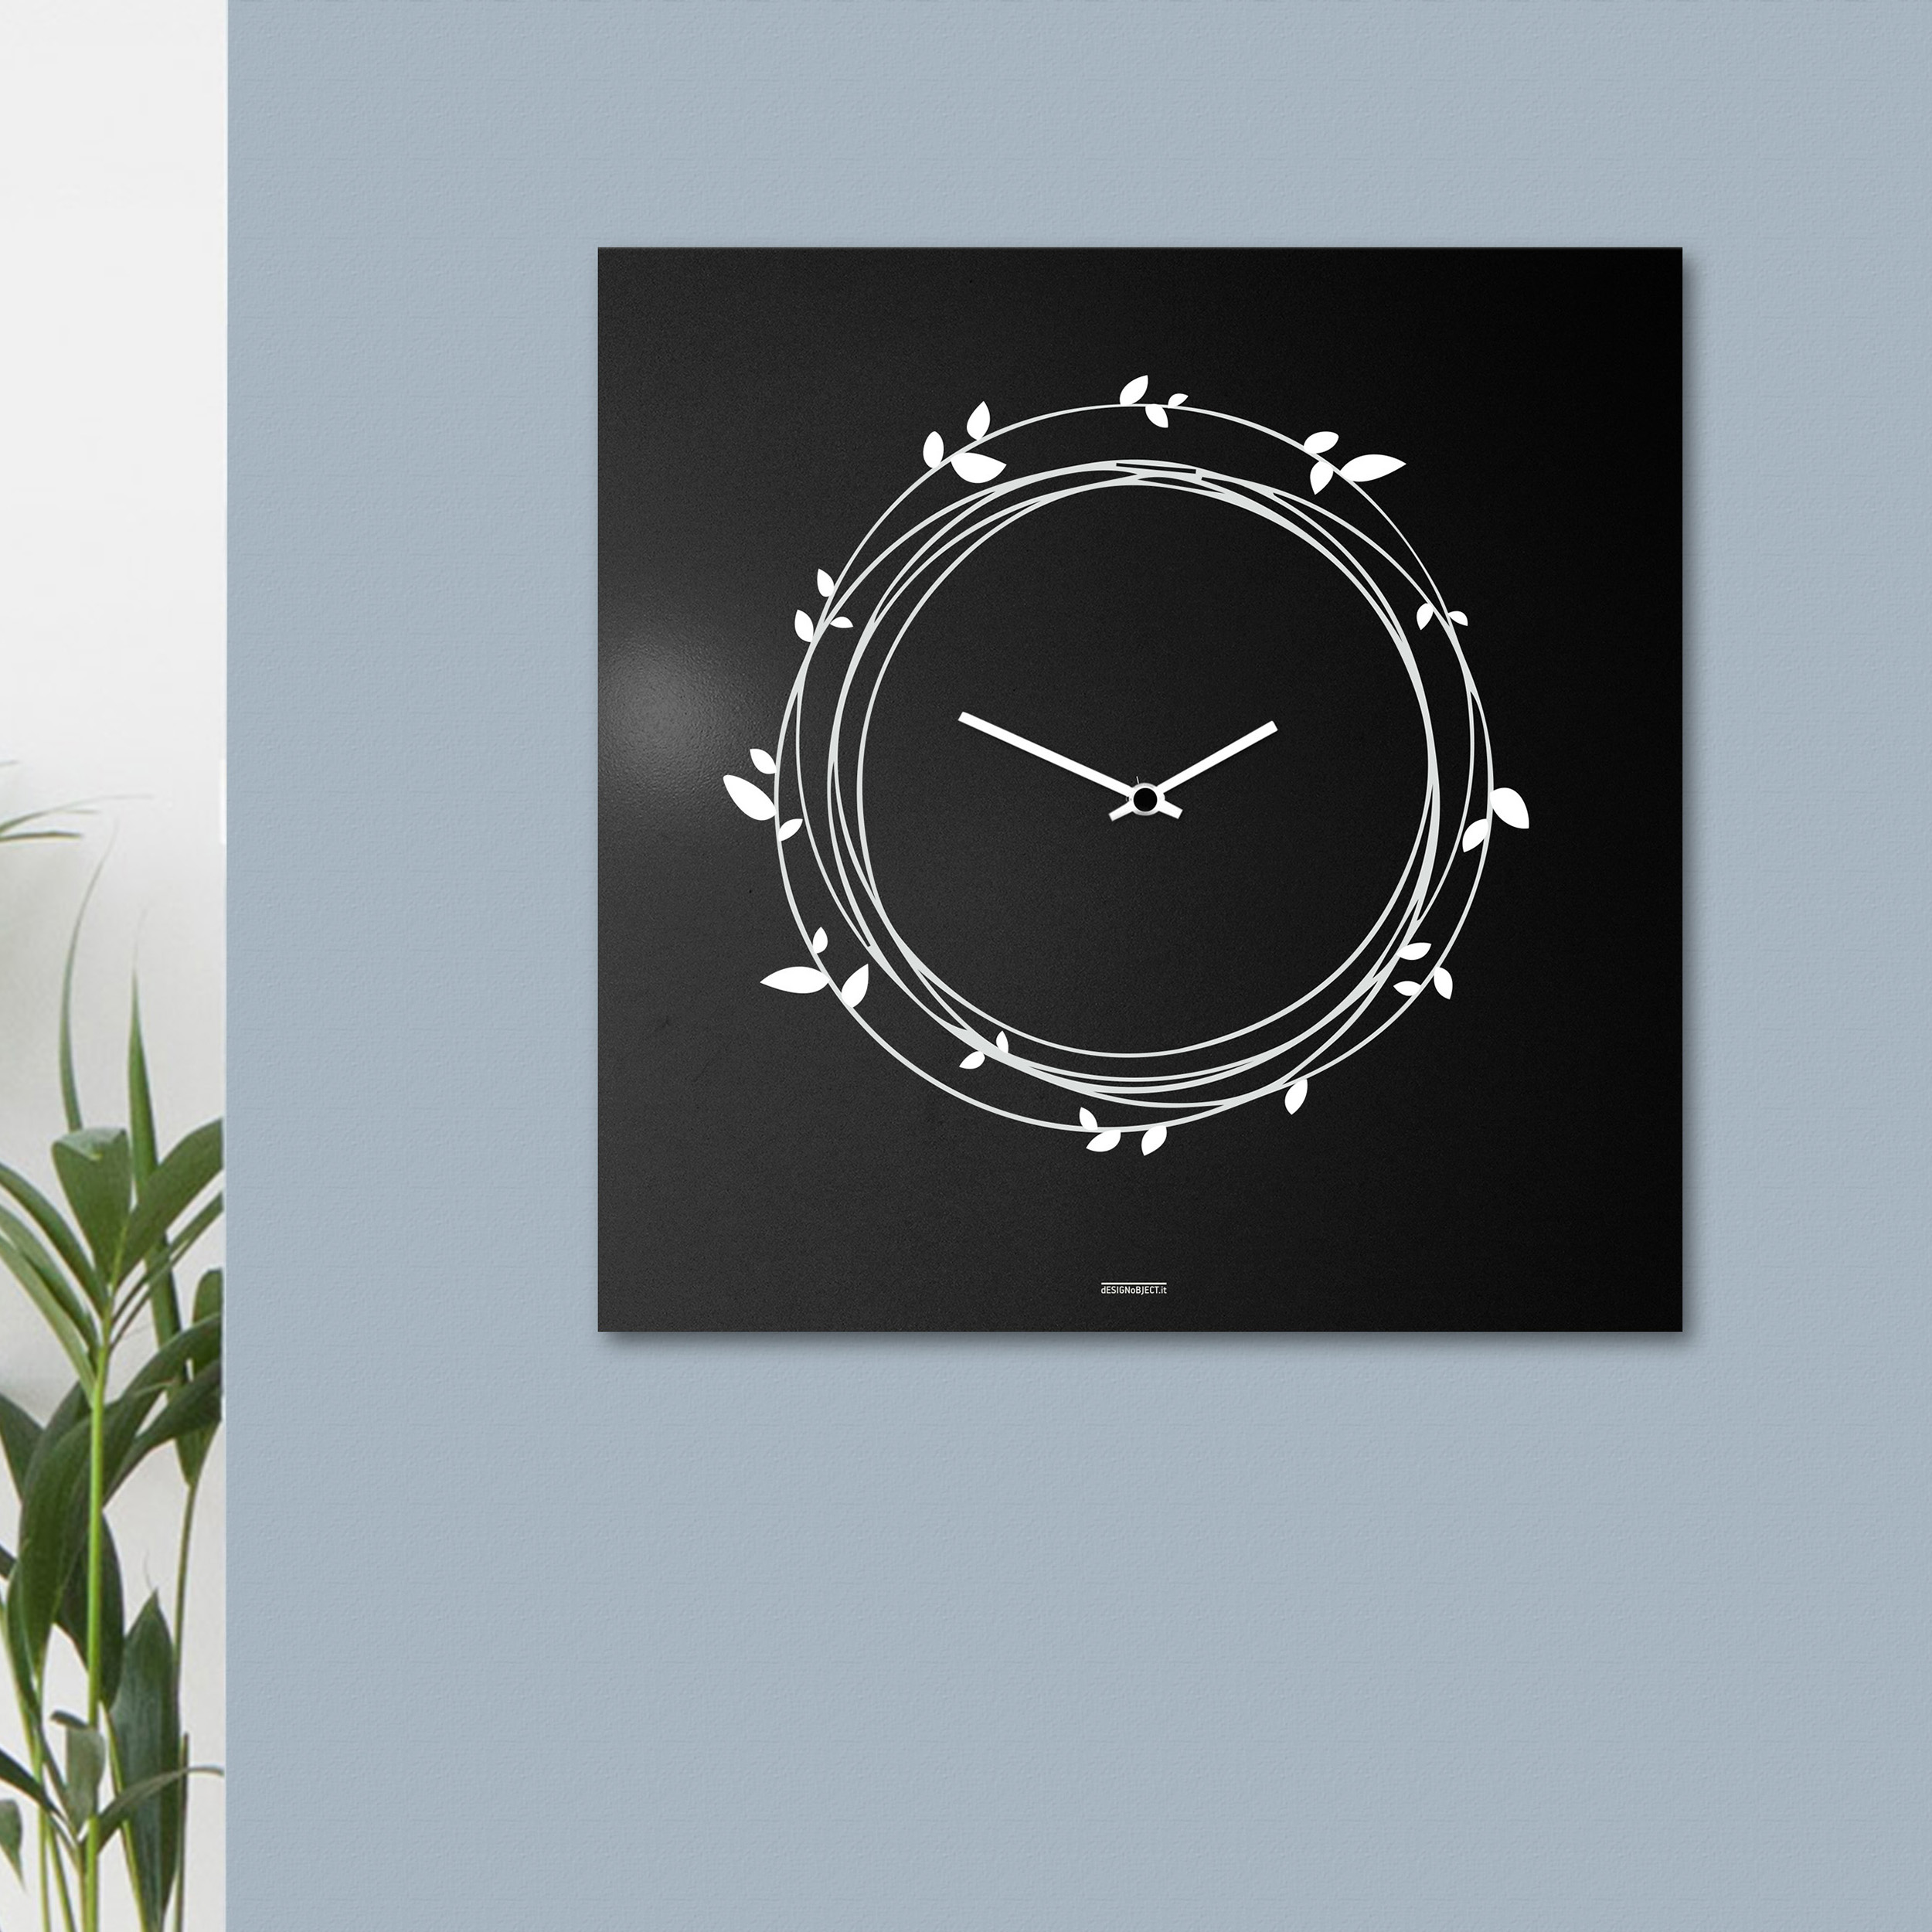 clock-design-nido-nest-bird-black-designobject